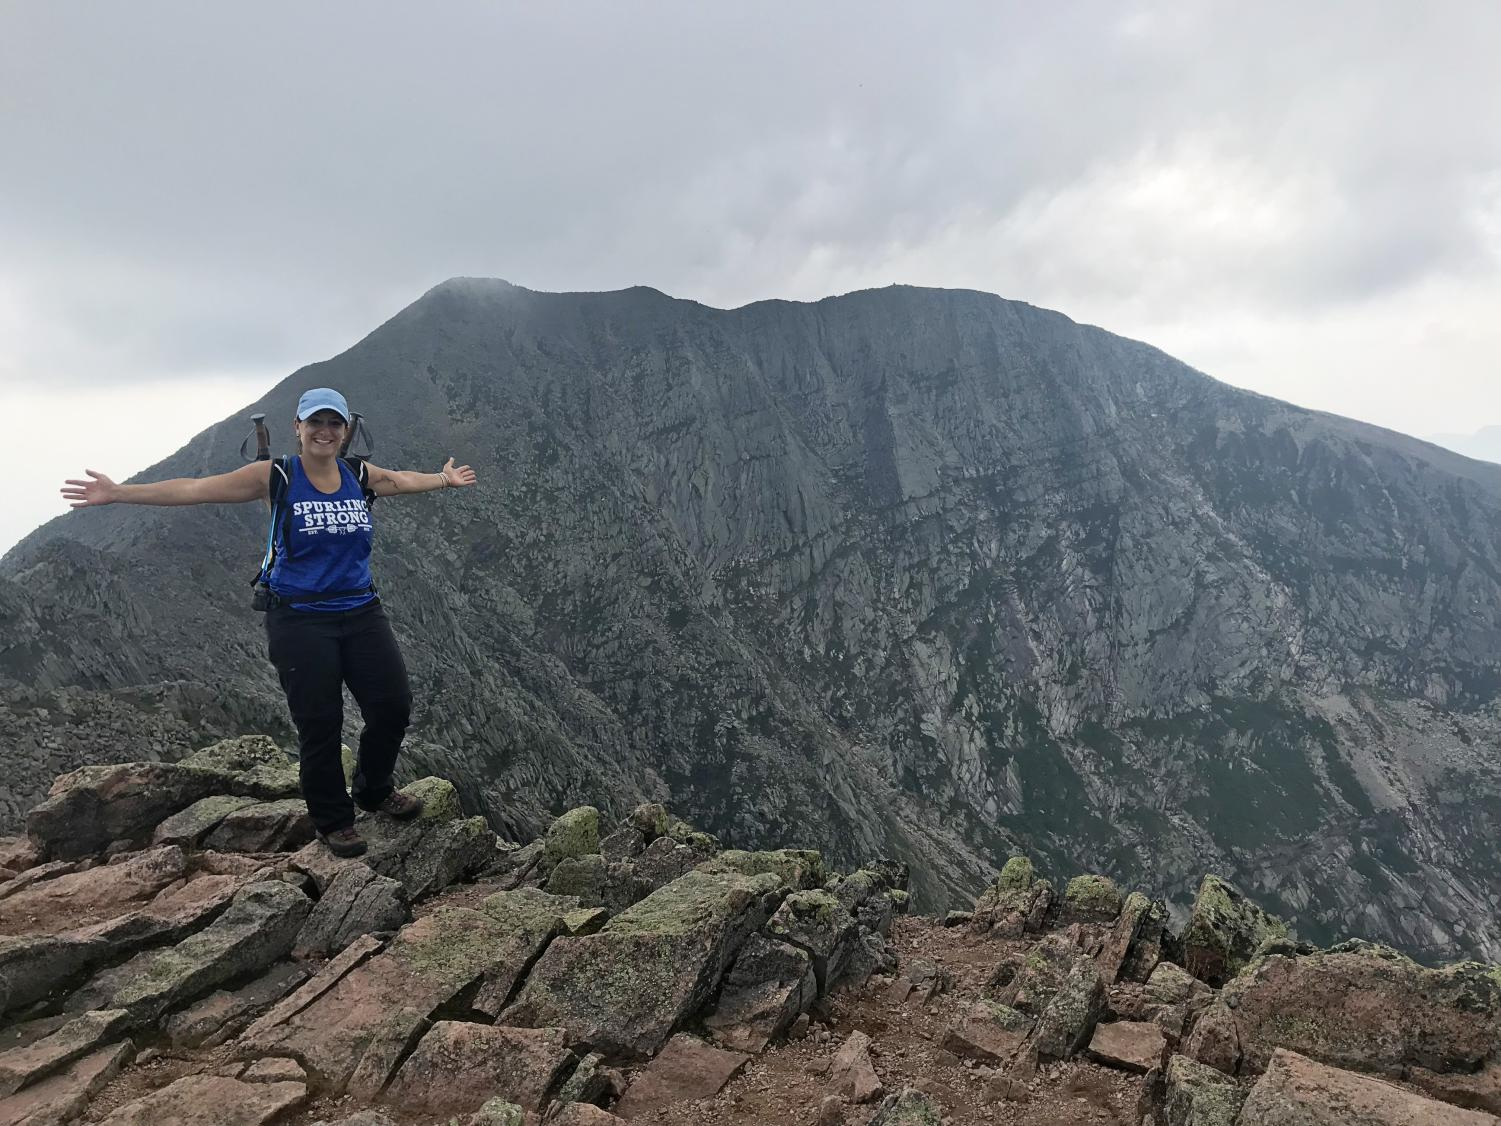 Mariel Leonard hikes the Knife's Edge trail on Mount Katahdin, the end of the Appalachian Trail for North-bound hikers, in August 2018.